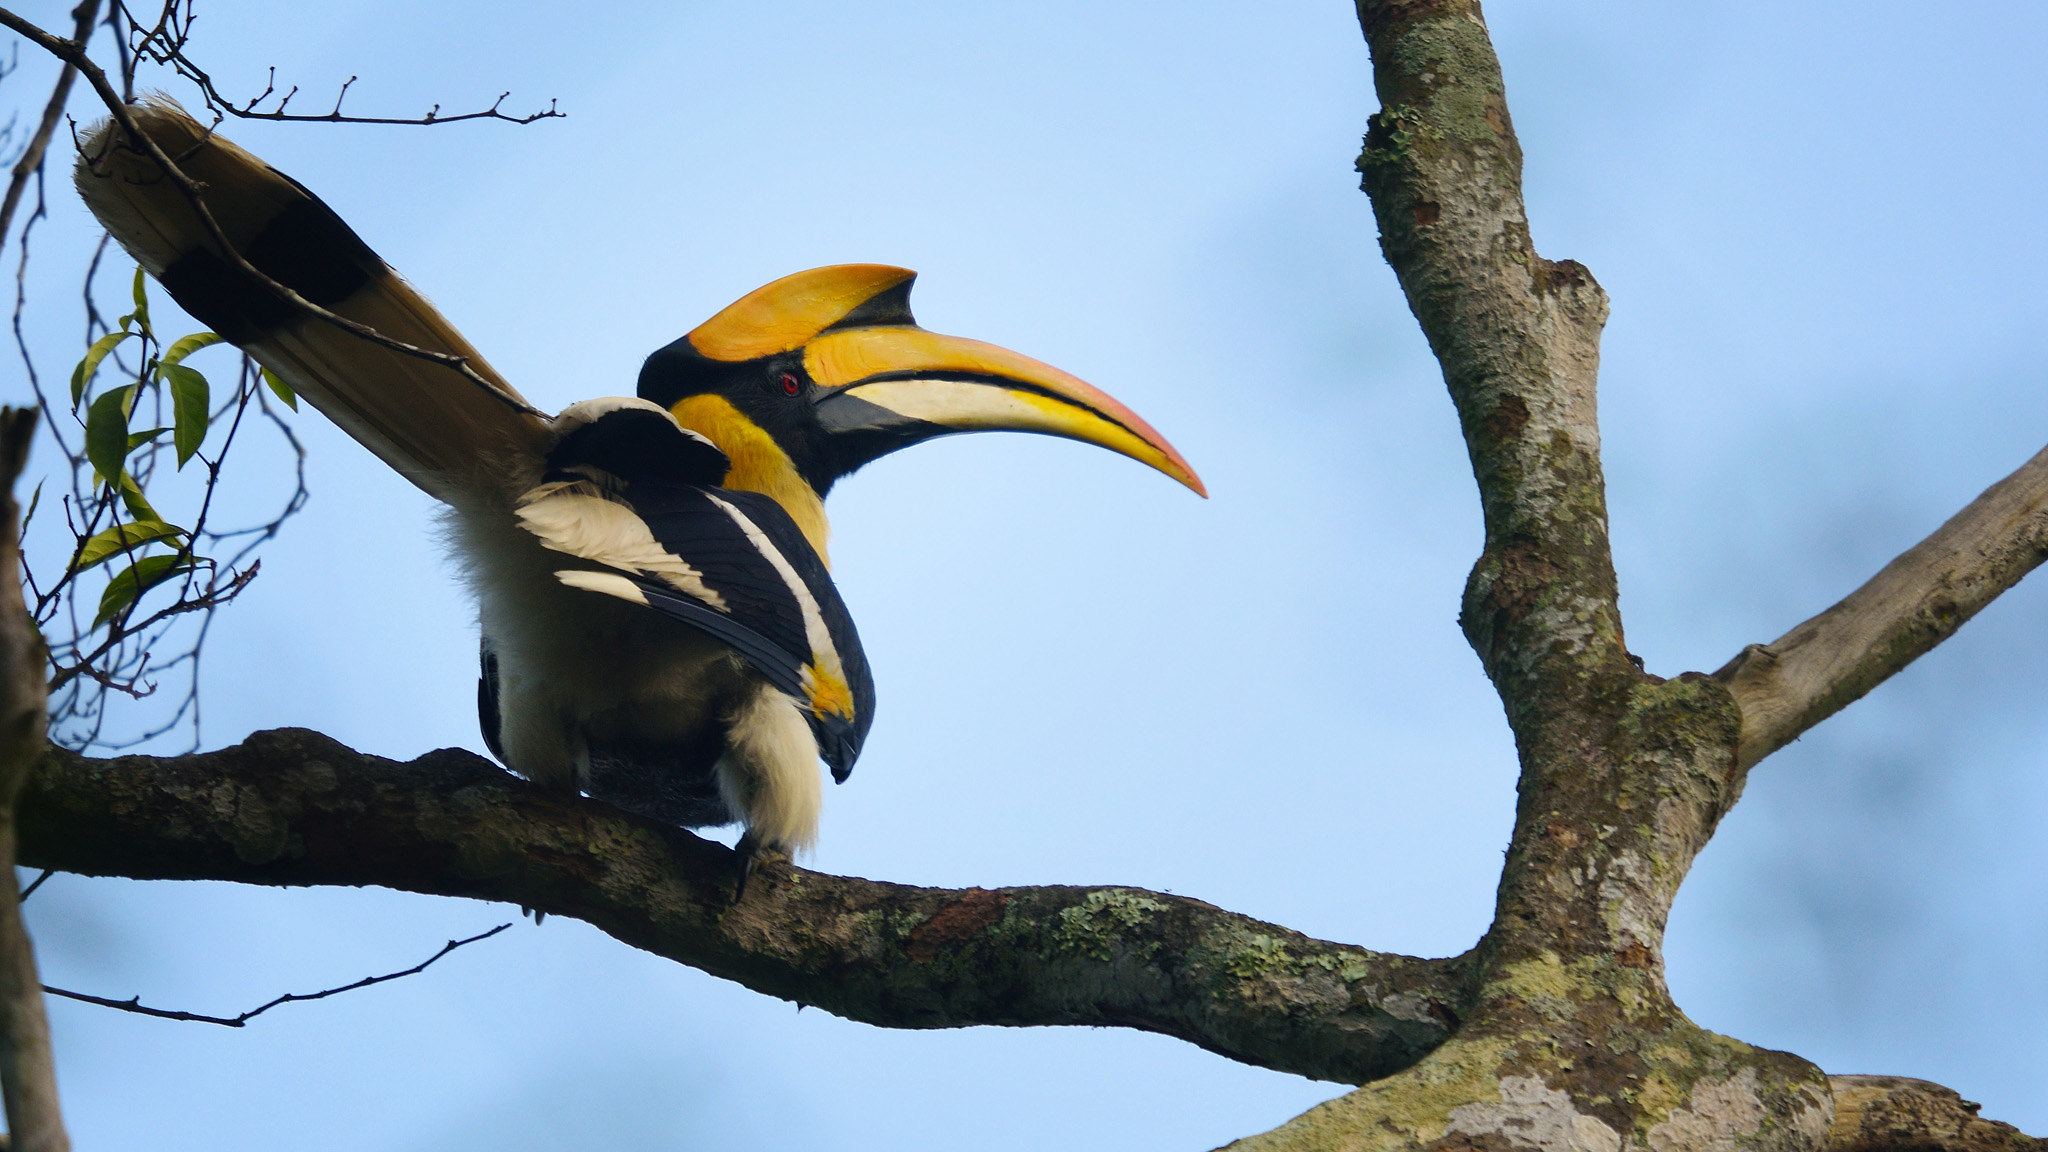 A great hornbill in Thailand's Kaeng Krachan National Park. Image by tontantravel/Flickr.